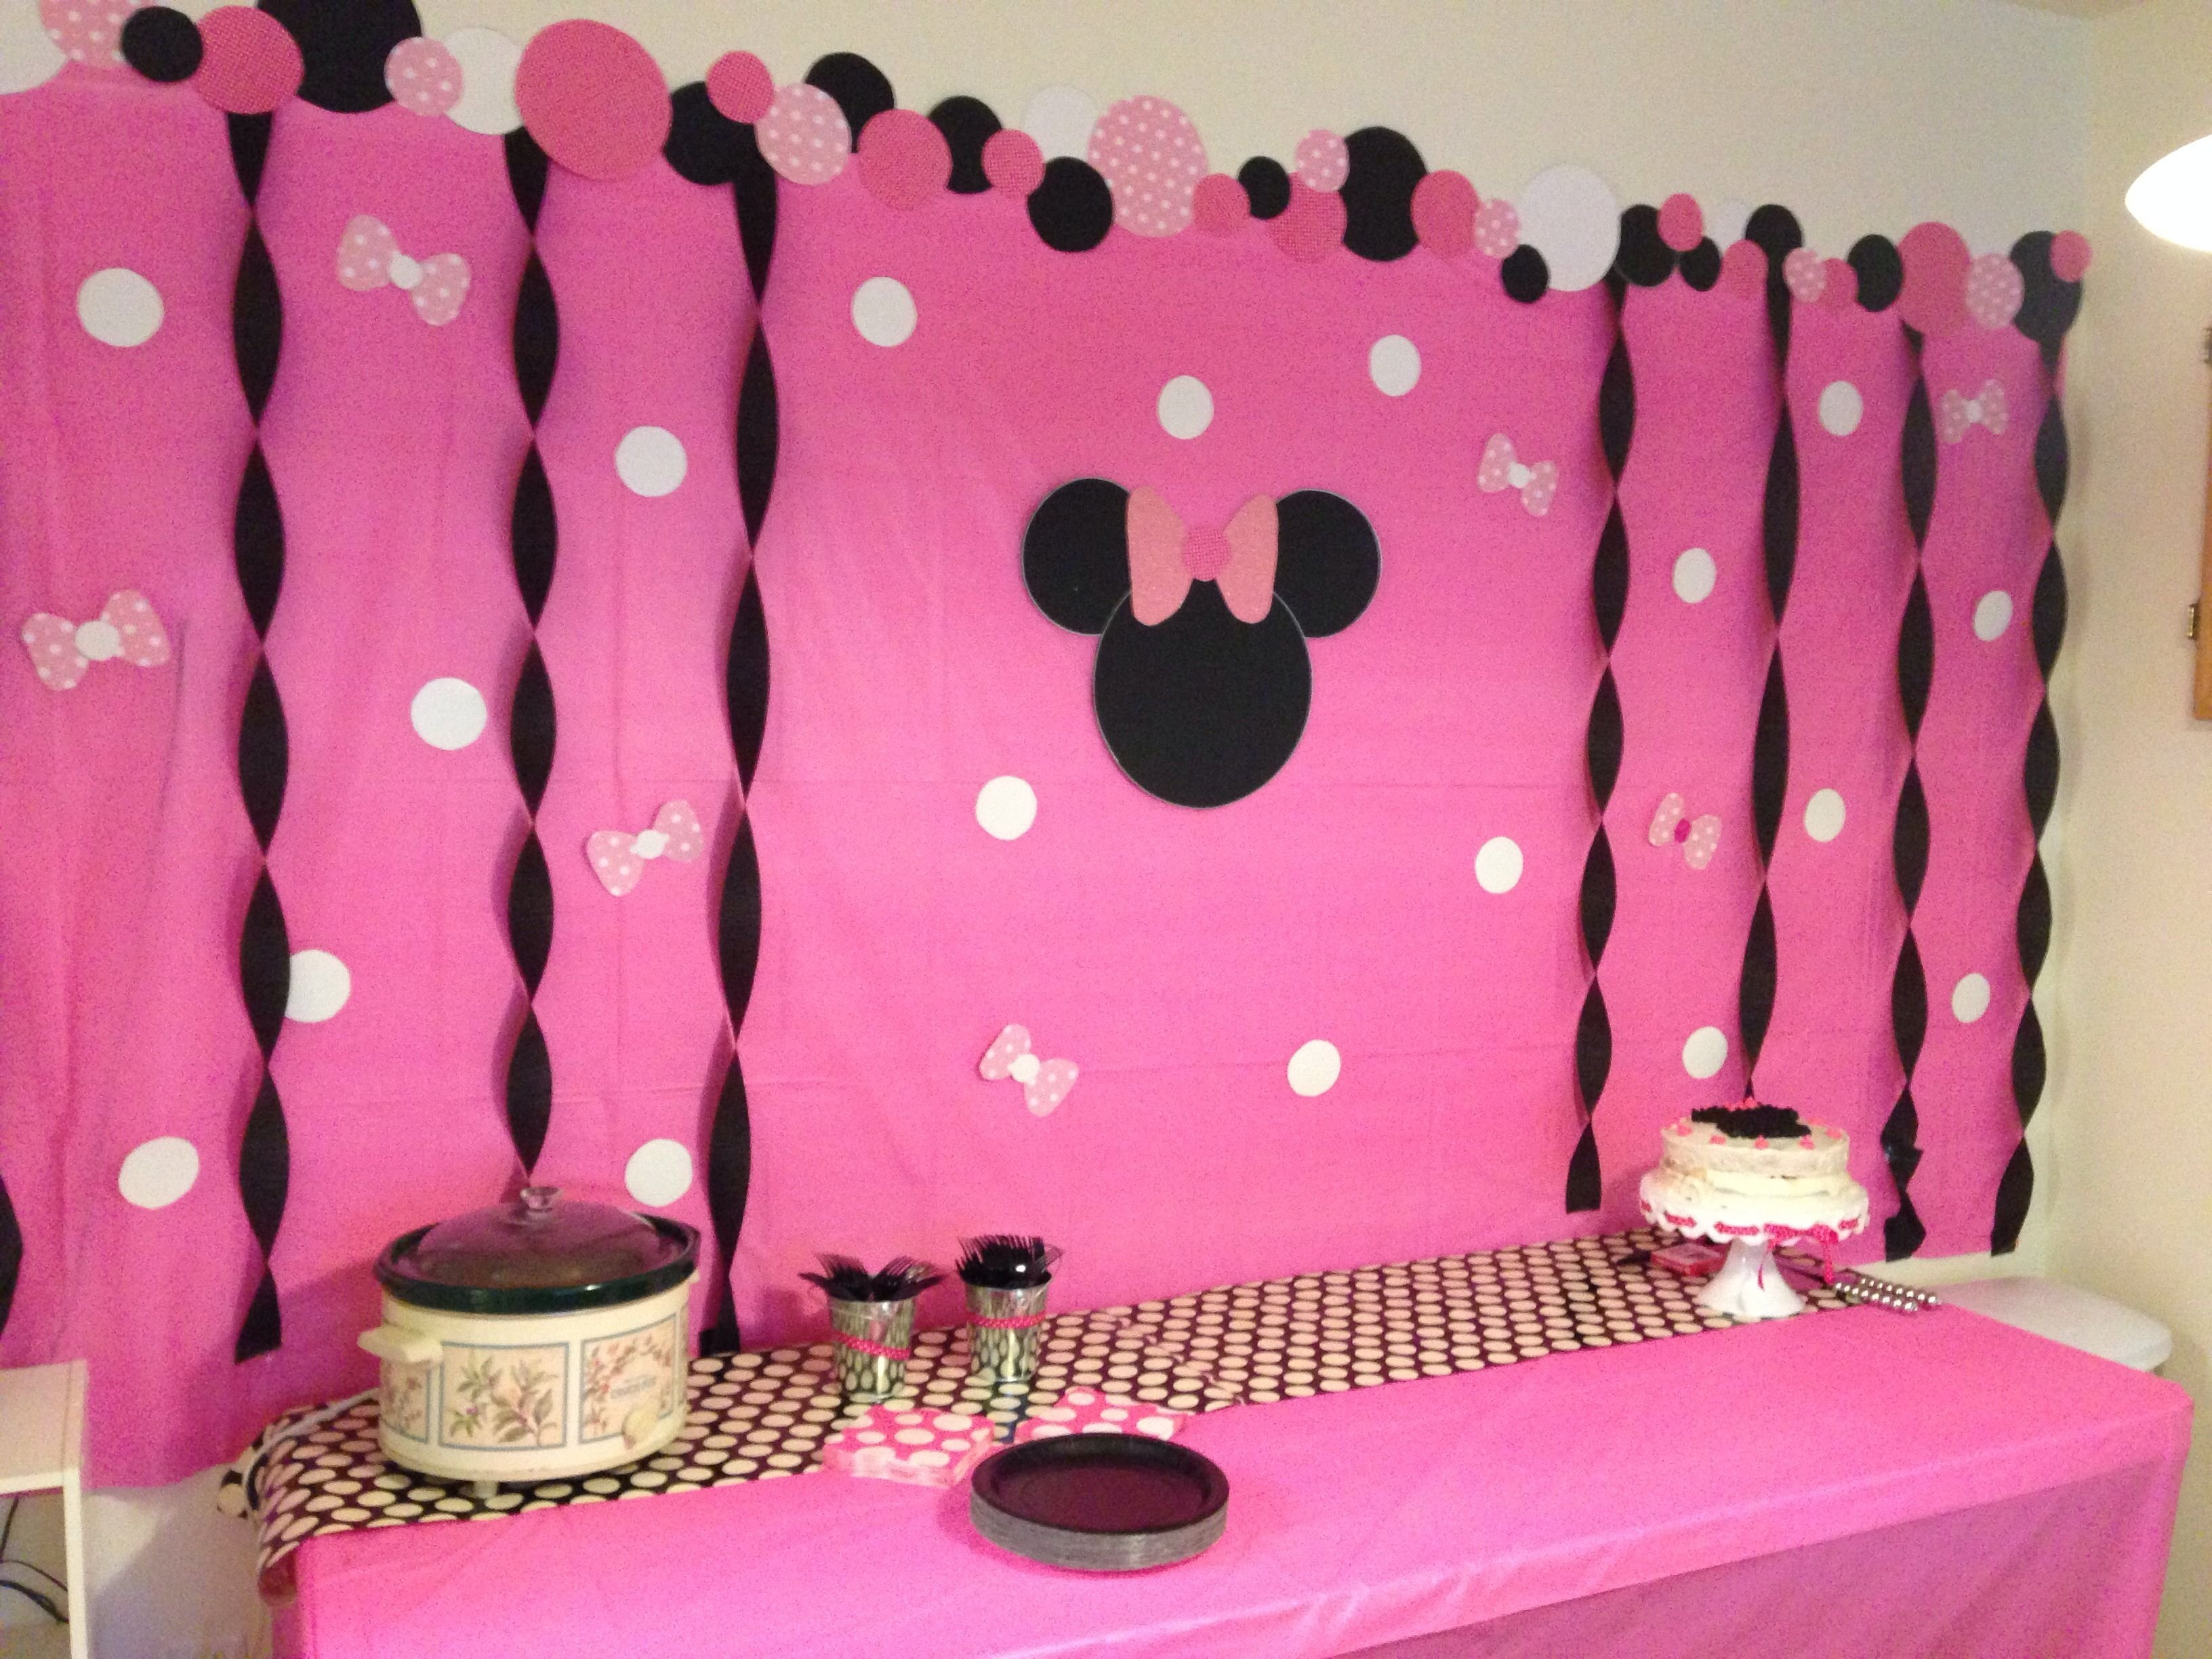 10 Ideal Ideas For Minnie Mouse Birthday Party madisons minnie mouse birthday party diy backdrop look what i 1 2020